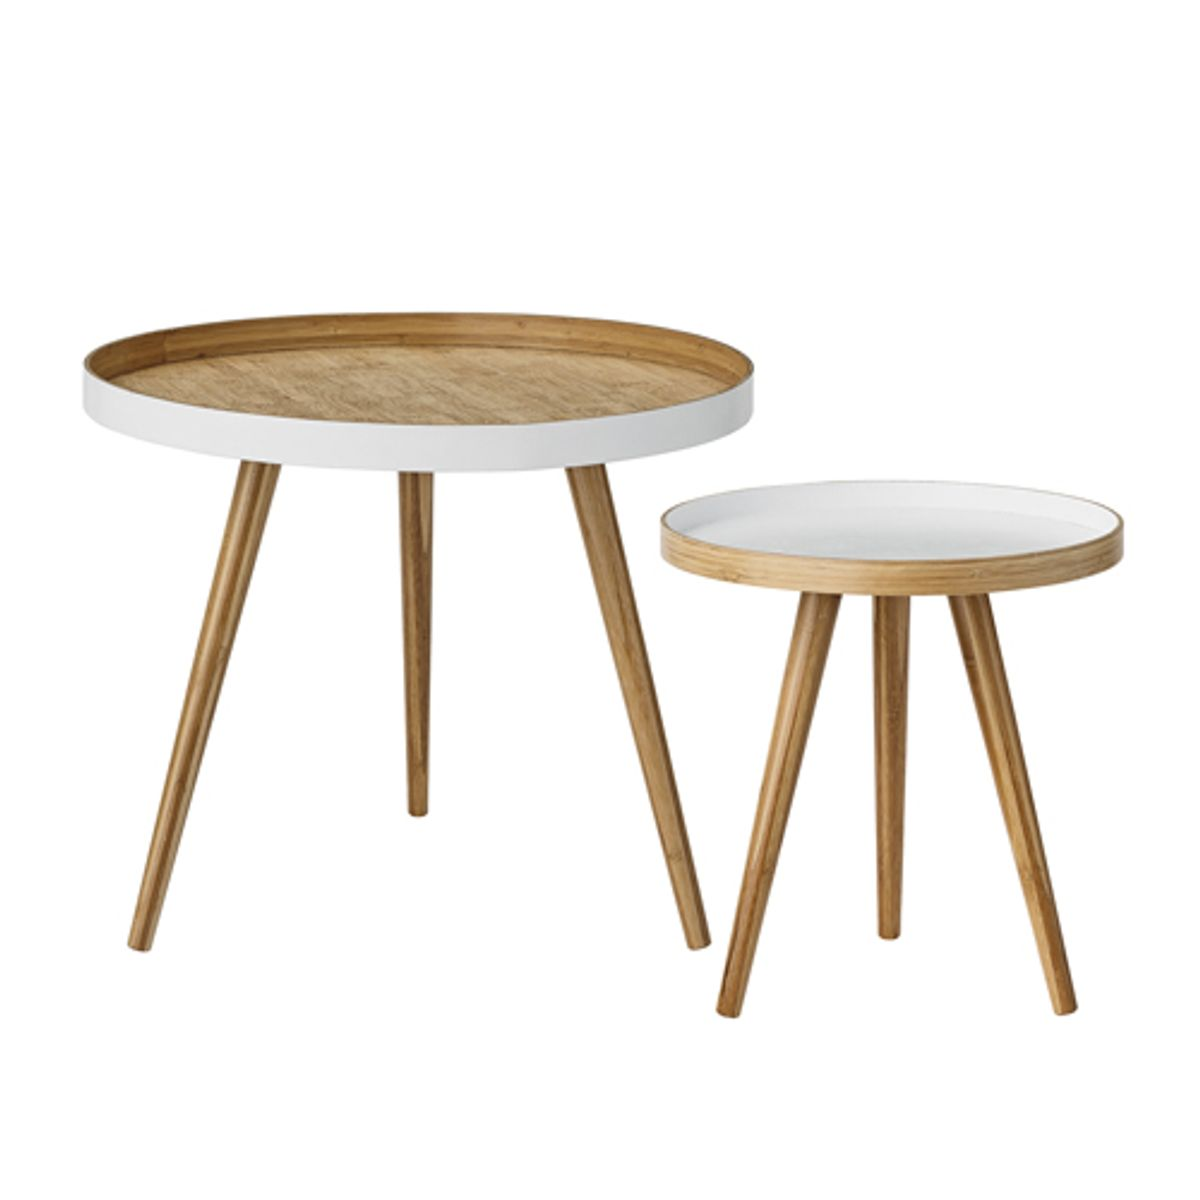 Table basse ronde en bambou naturel et blanc (par 2) Bloomingville